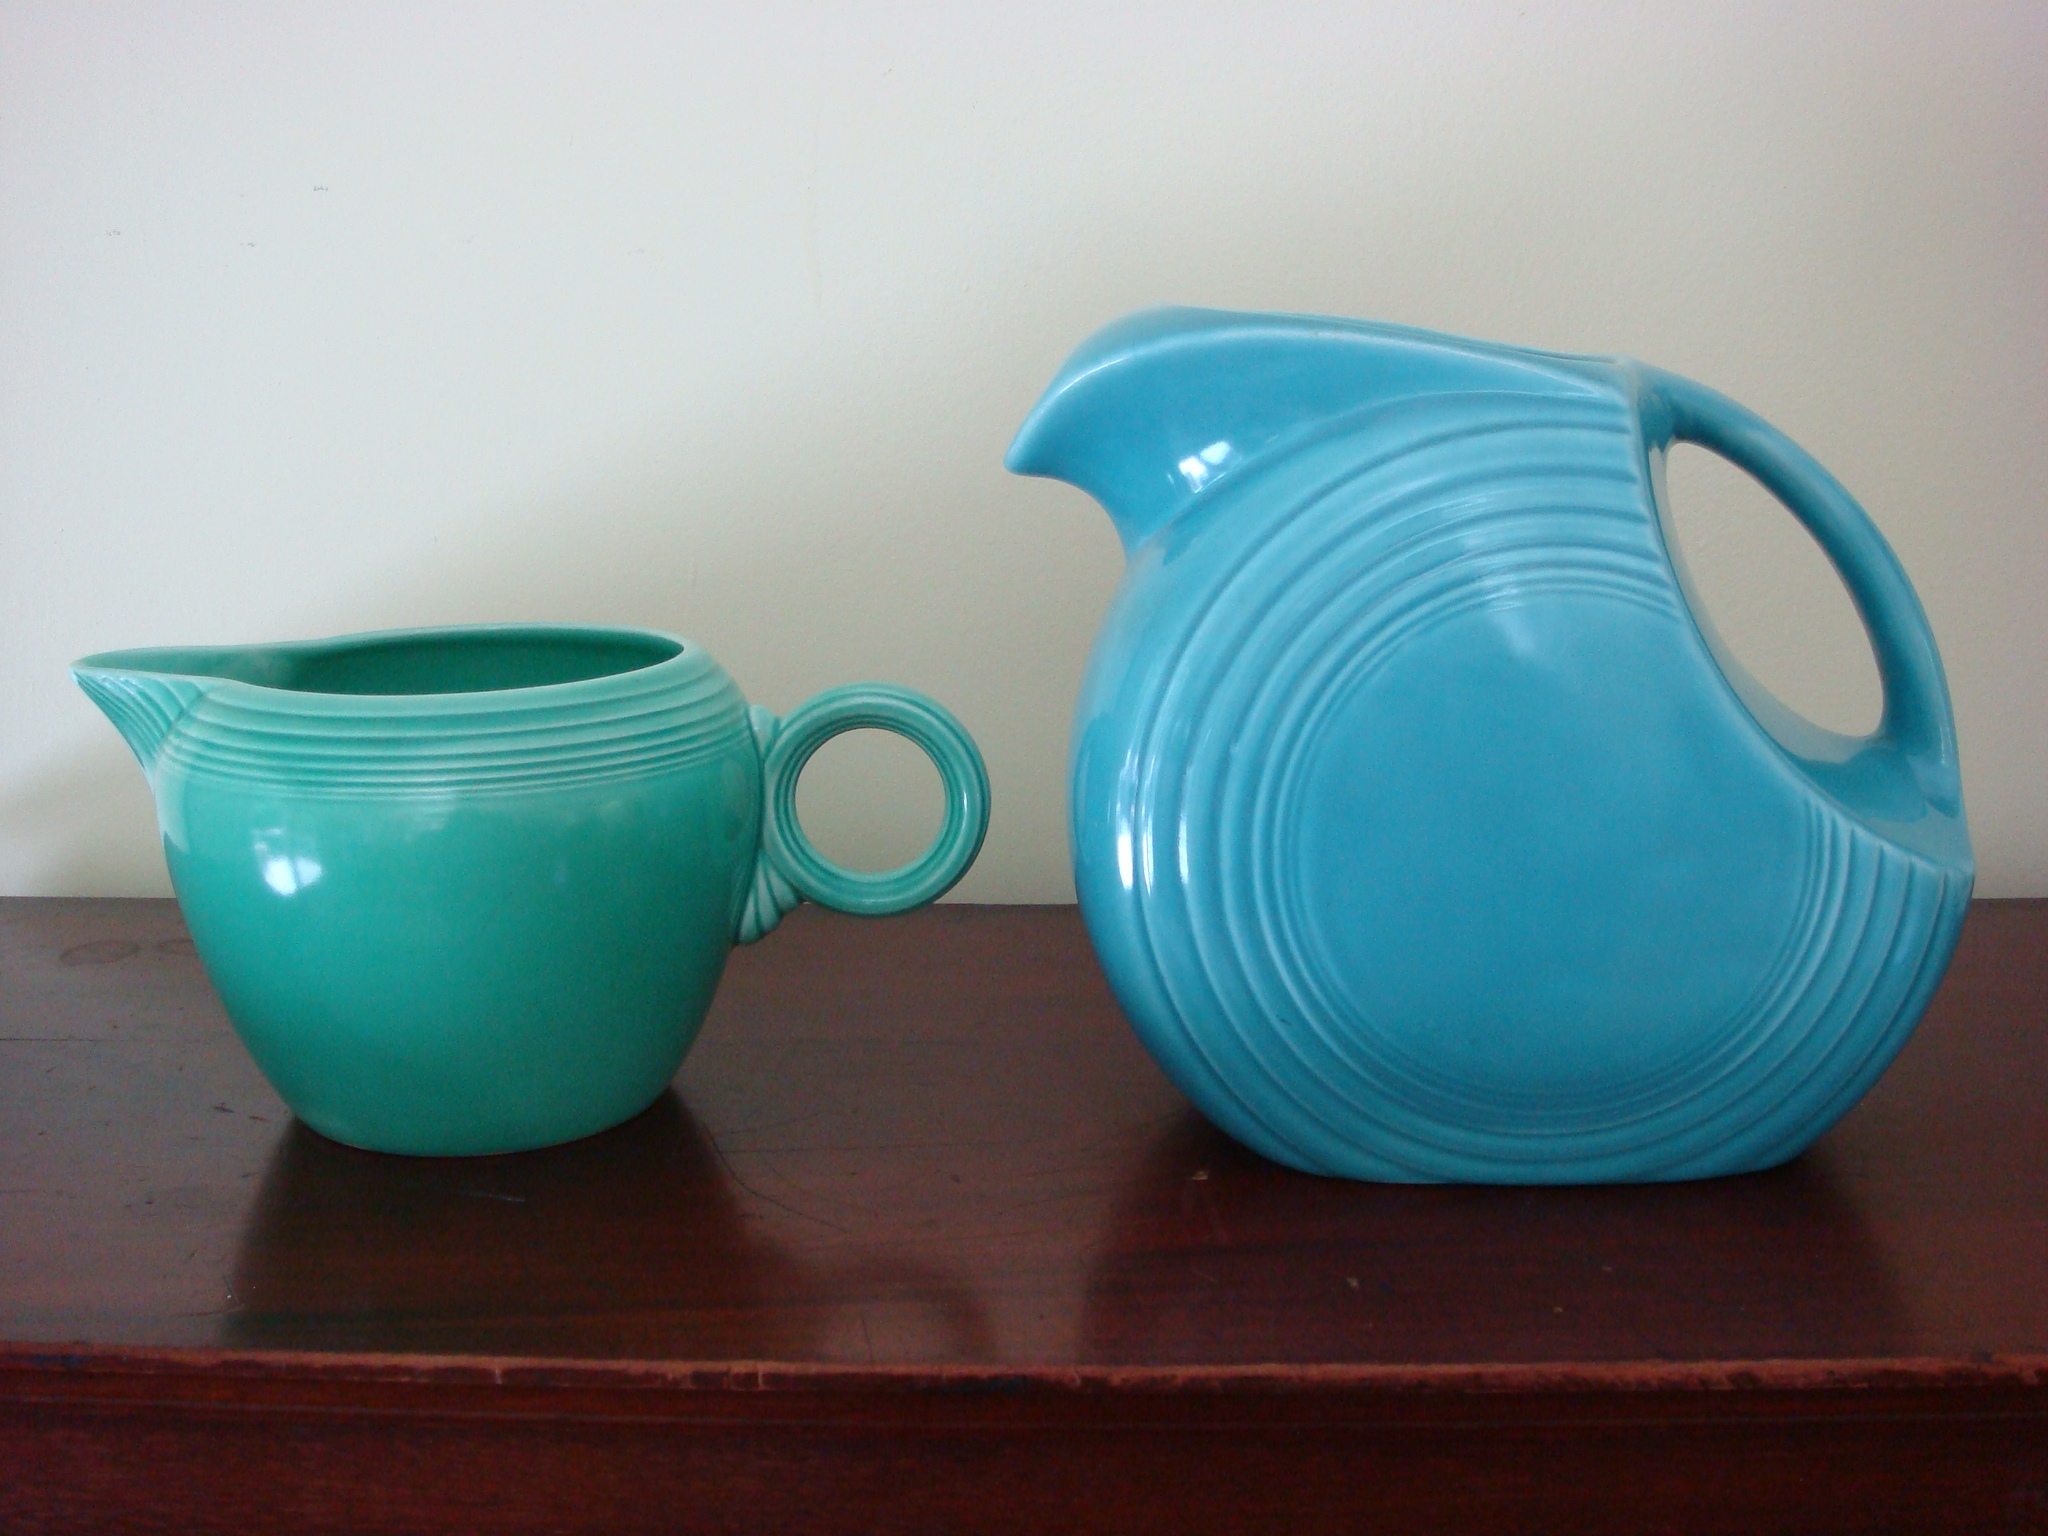 lovely green mug and blue teapot by fiestaware for drinkware ideas